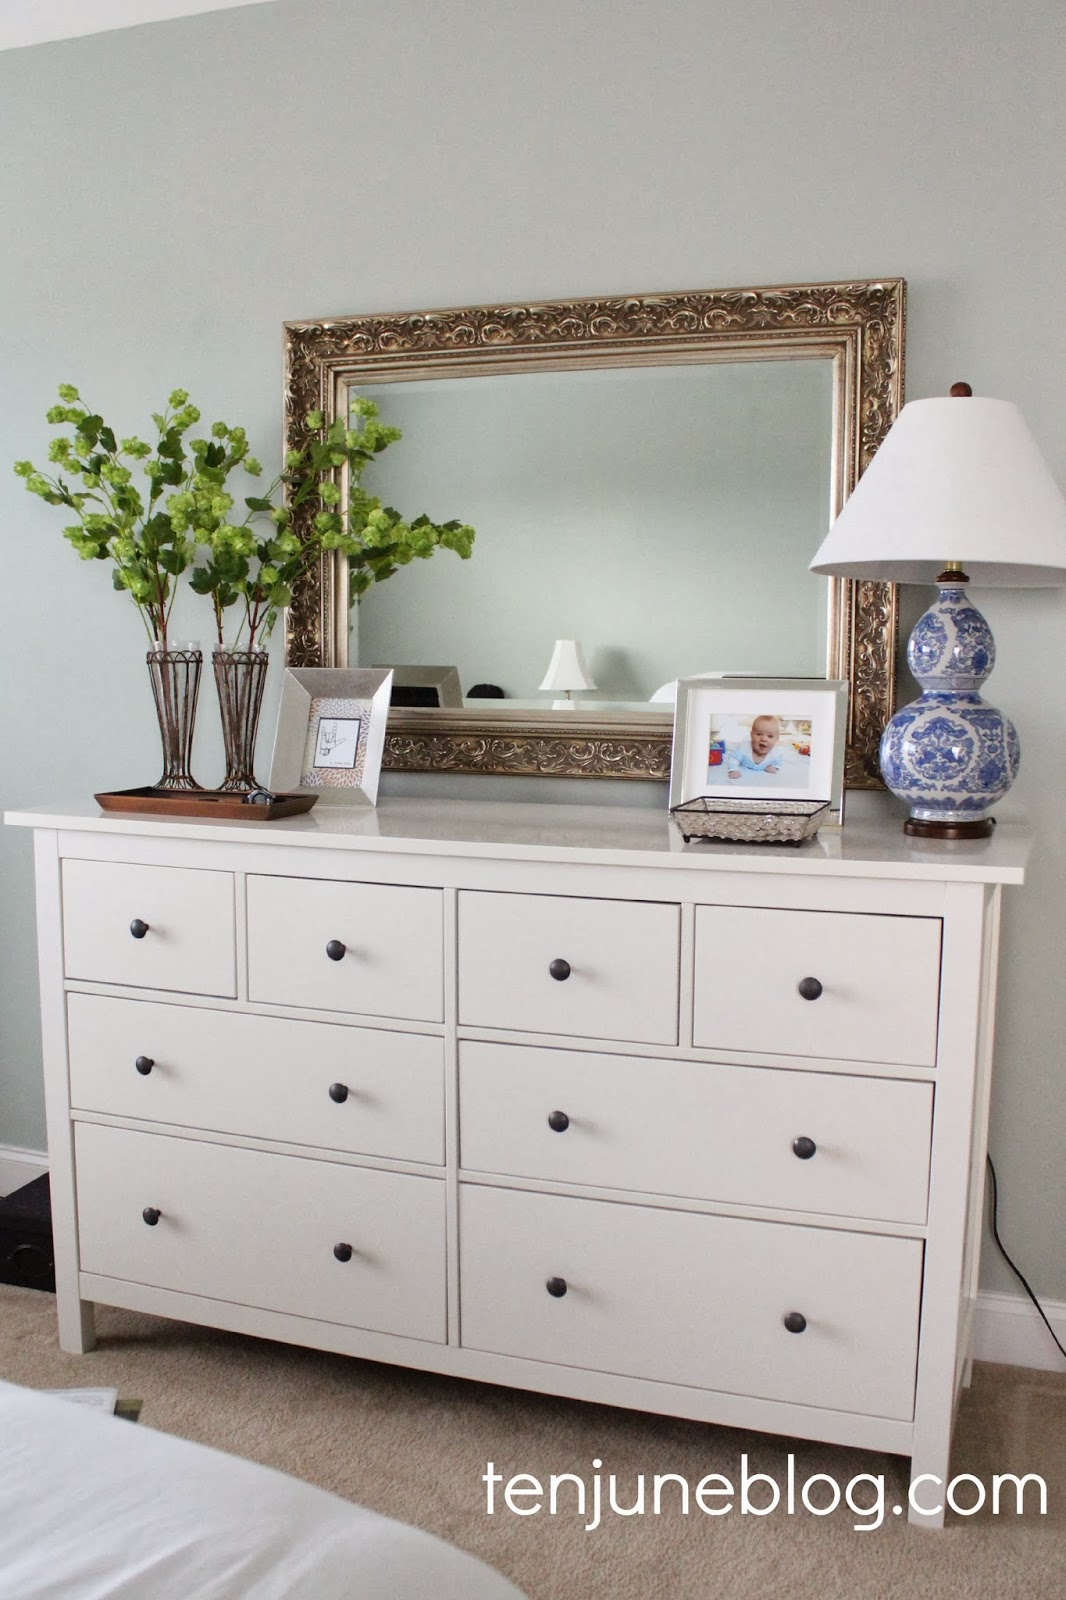 Ten june master bedroom dresser vignette for Bedroom dressers